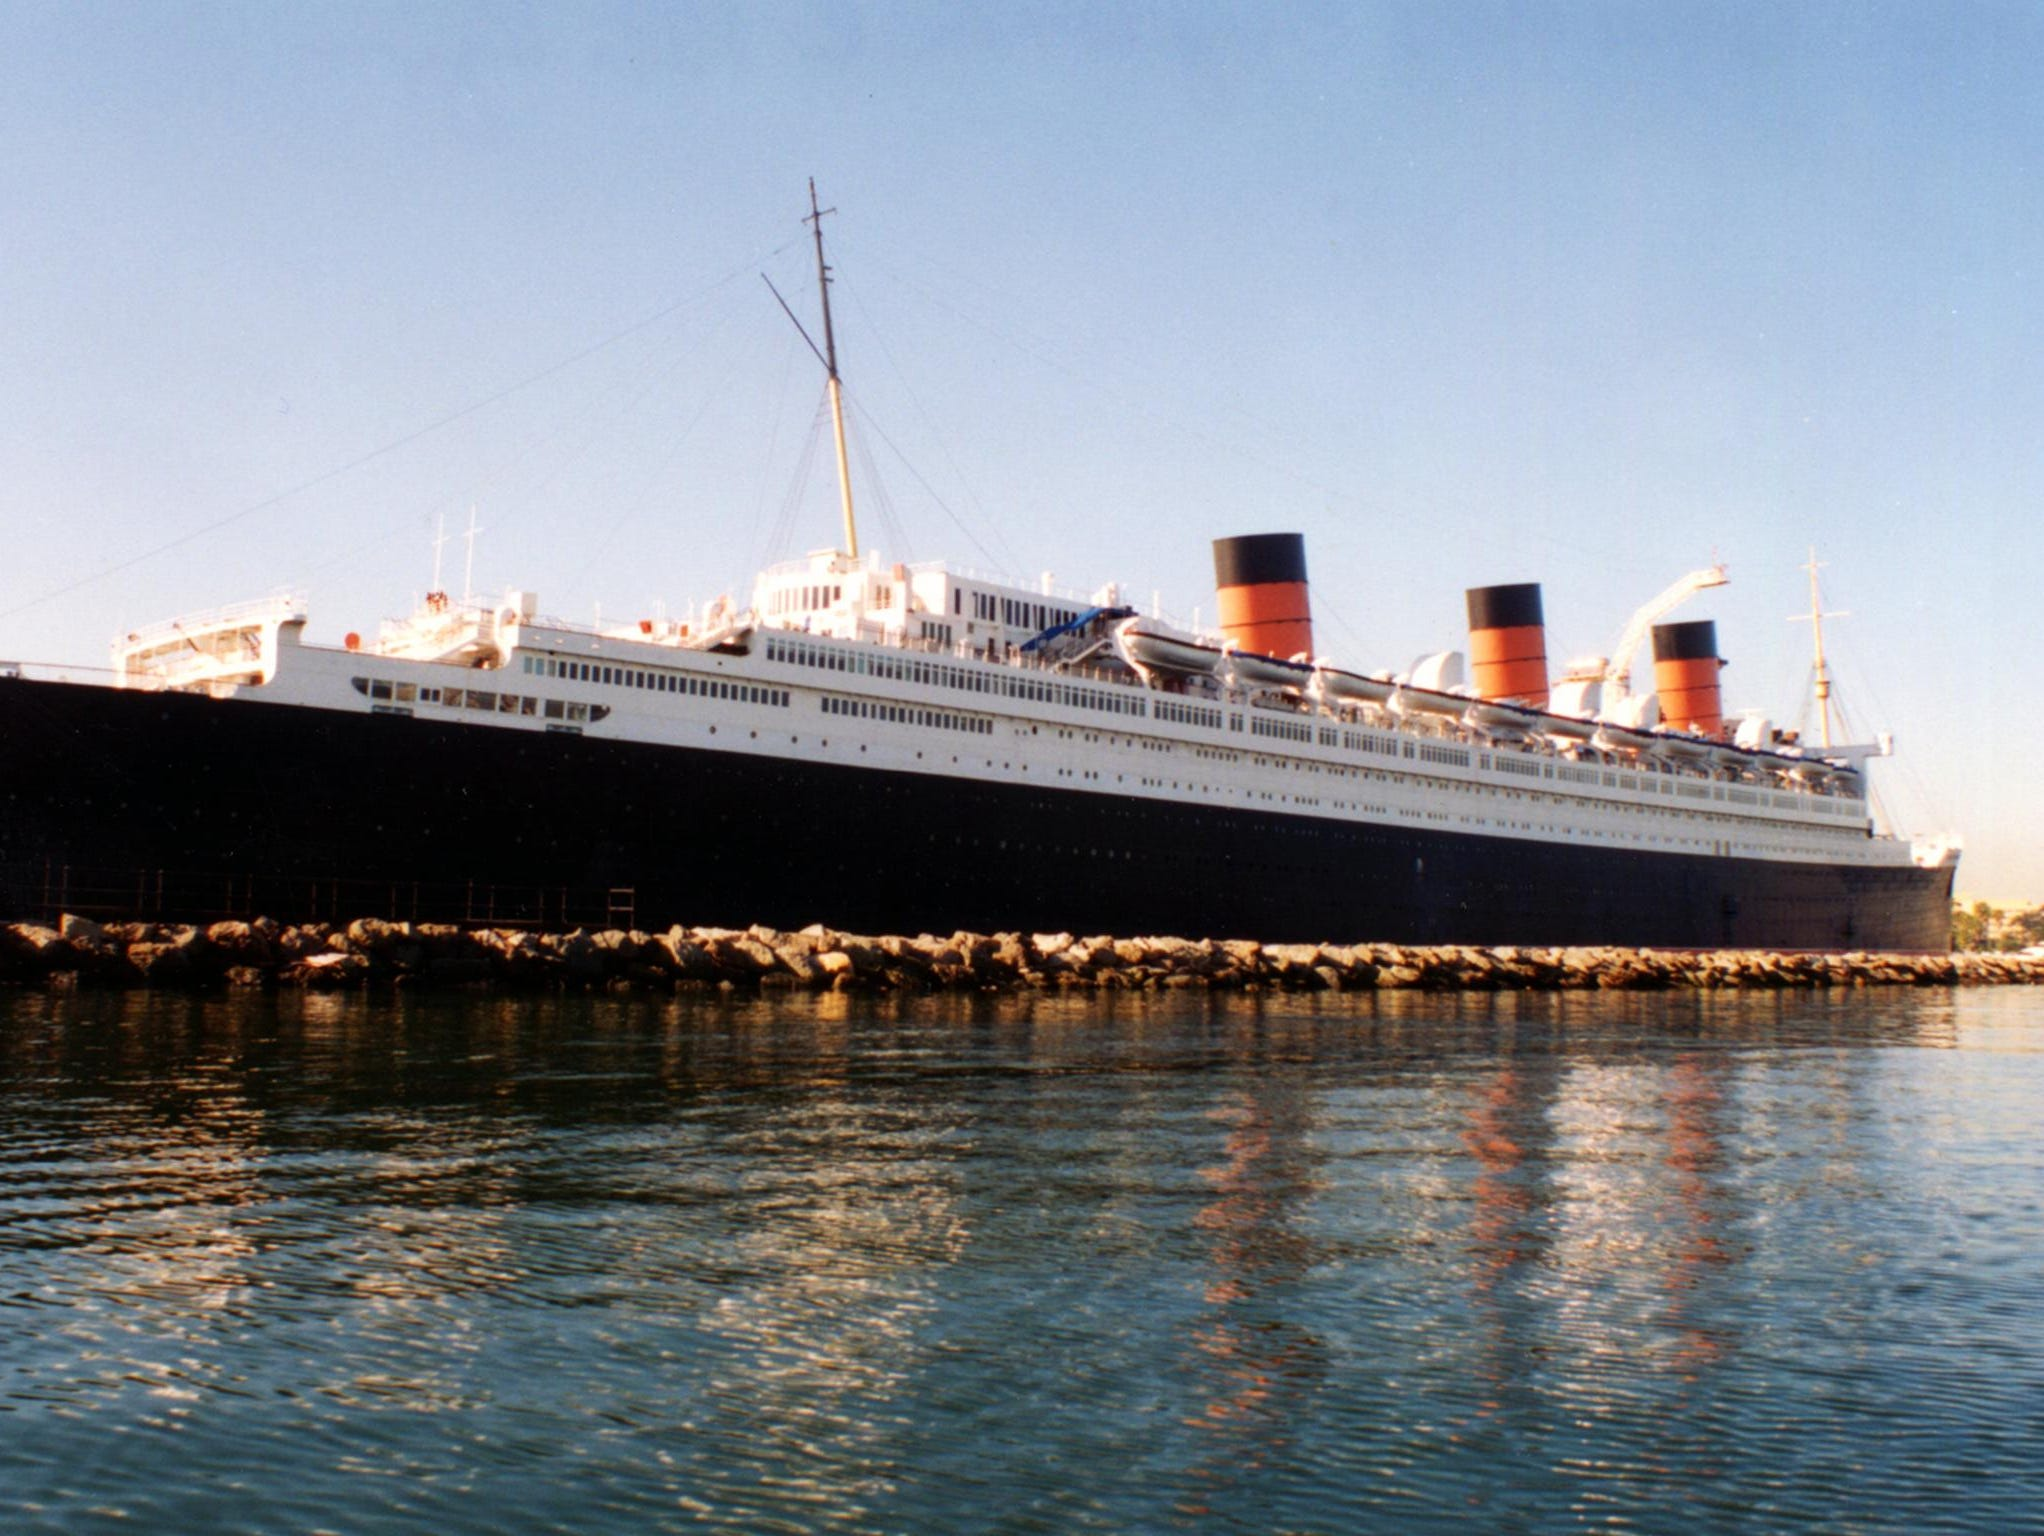 After being moved to its new berth, the Queen Mary was surrounded in a protective rock wall. On May 8, 1971, the ship was opened up for public tours, initially averaging 15,000 visitors per day. In December of 1972, the hotel and restaurants were also opened.